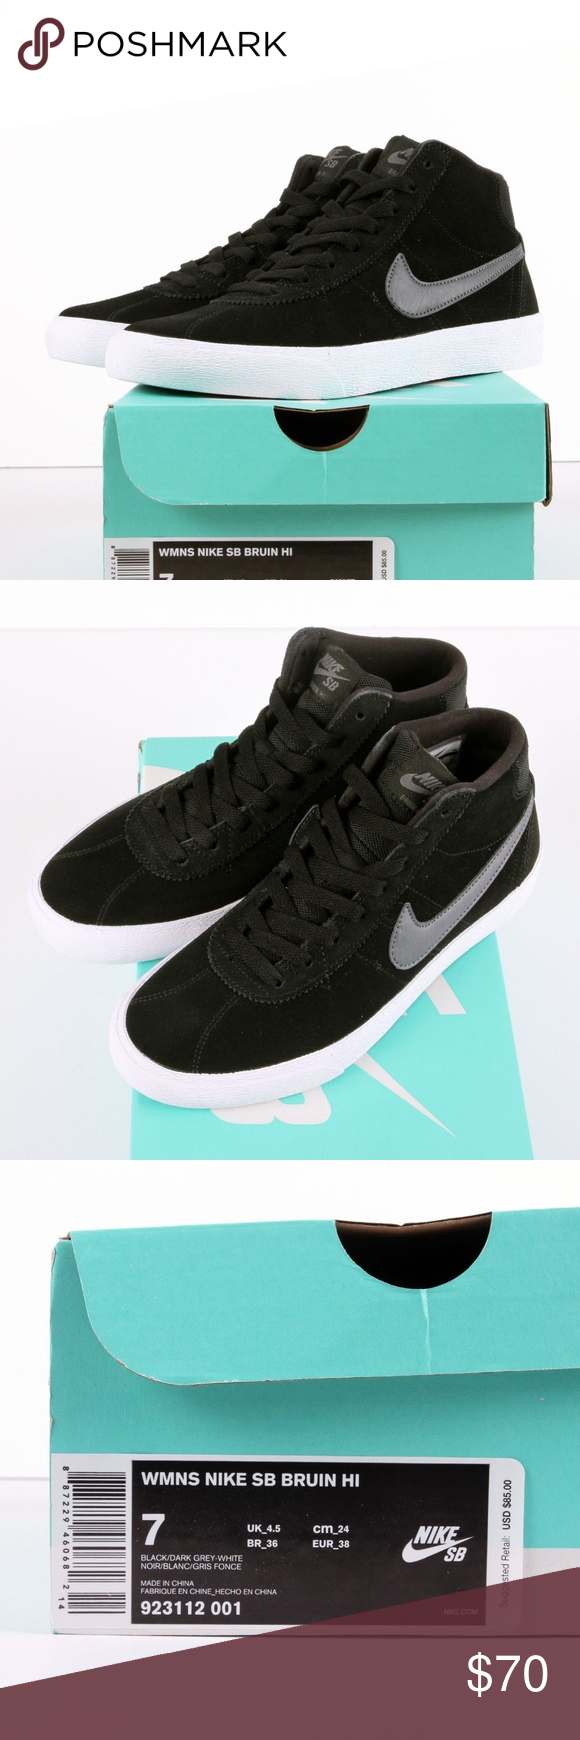 Women s Nike SB Bruin High Women s Nike SB Bruin High Black White Dark Grey  Style   923112-001 Size US Size 7 Feel free to ask questions or offers. e6d1d3cce